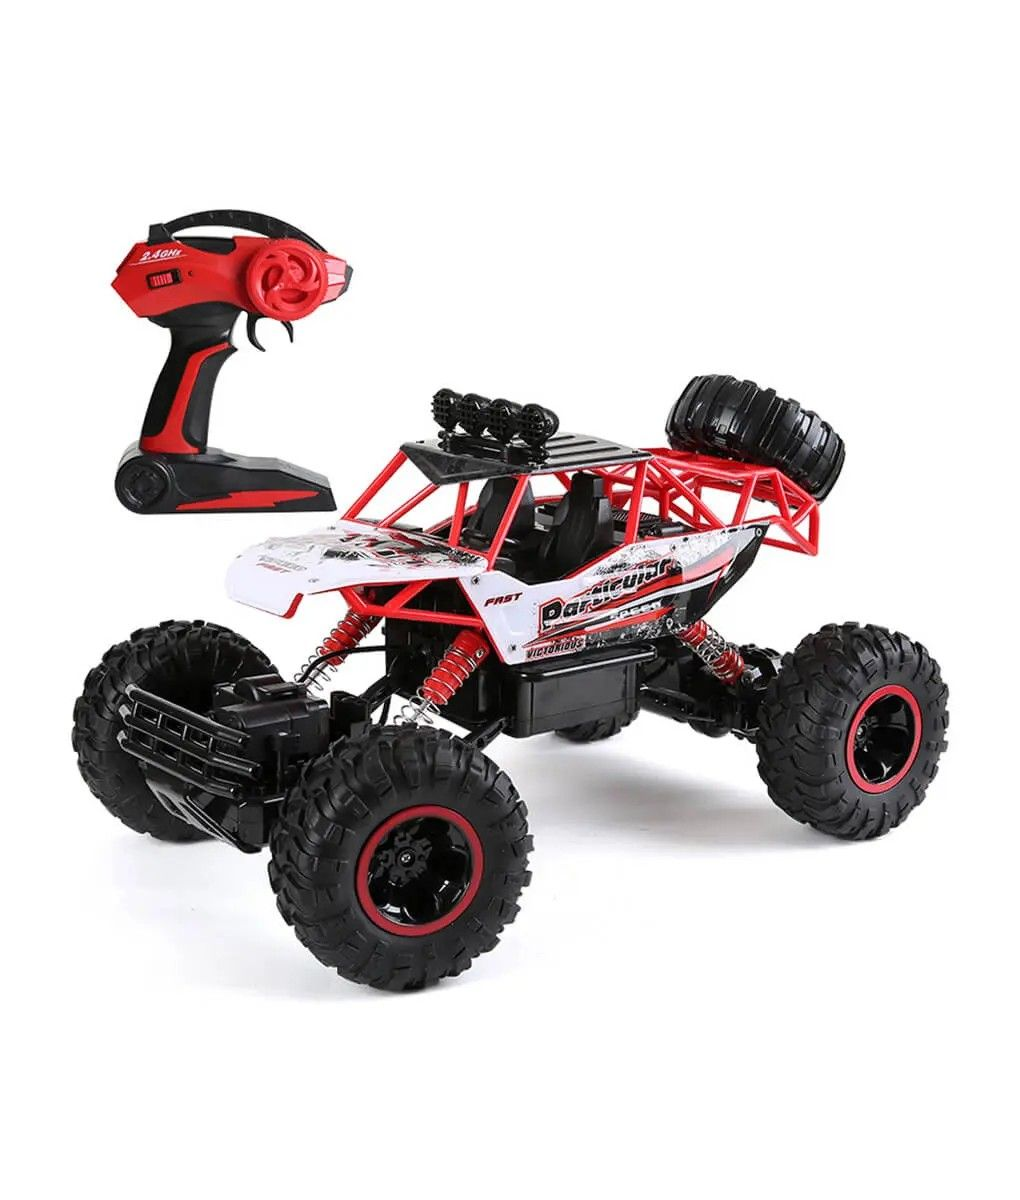 1/12 Scale 4WD Monster Truck Buy Online Low Prices